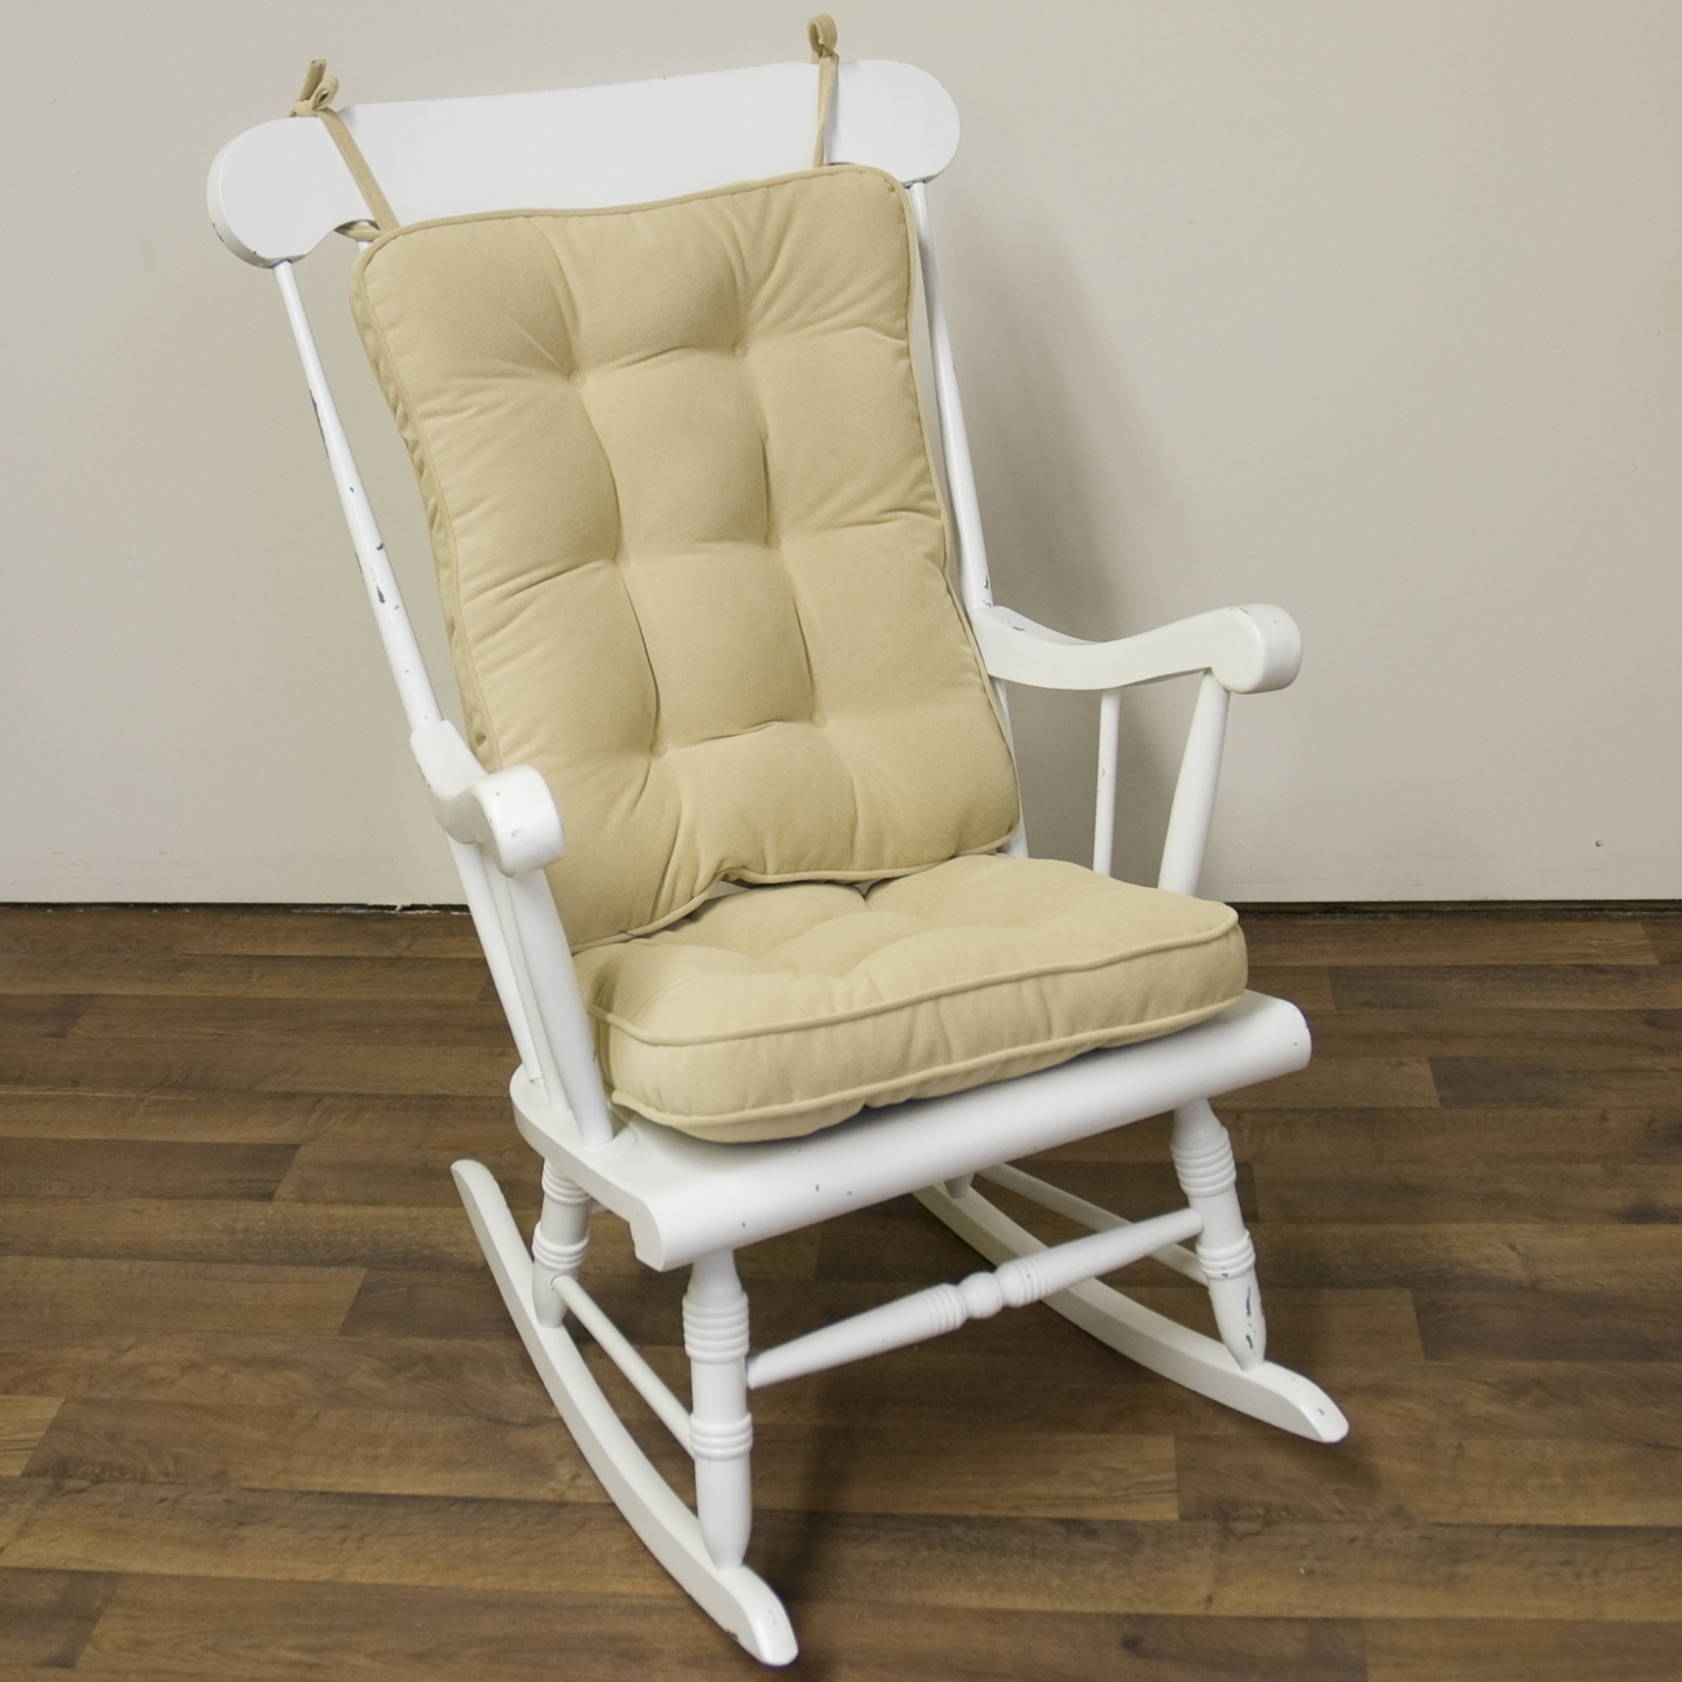 Lowes Rocking Chairs Within Widely Used Chairs: Sumptuous Rocking Chairs Lowes Chair Design Outdoor (View 7 of 15)